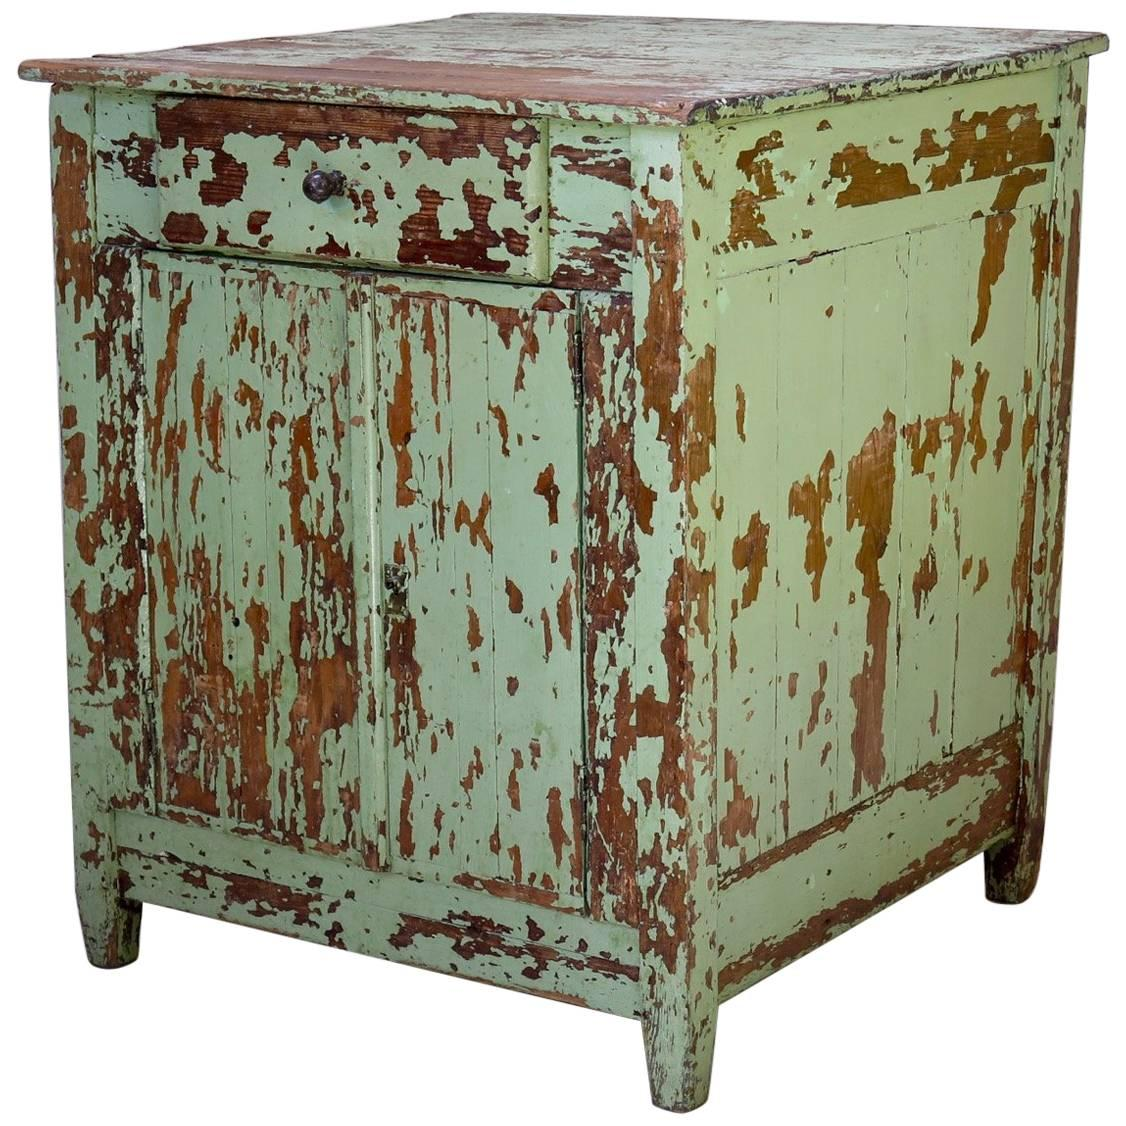 Rustic Painted Cabinet, France, circa 1920s